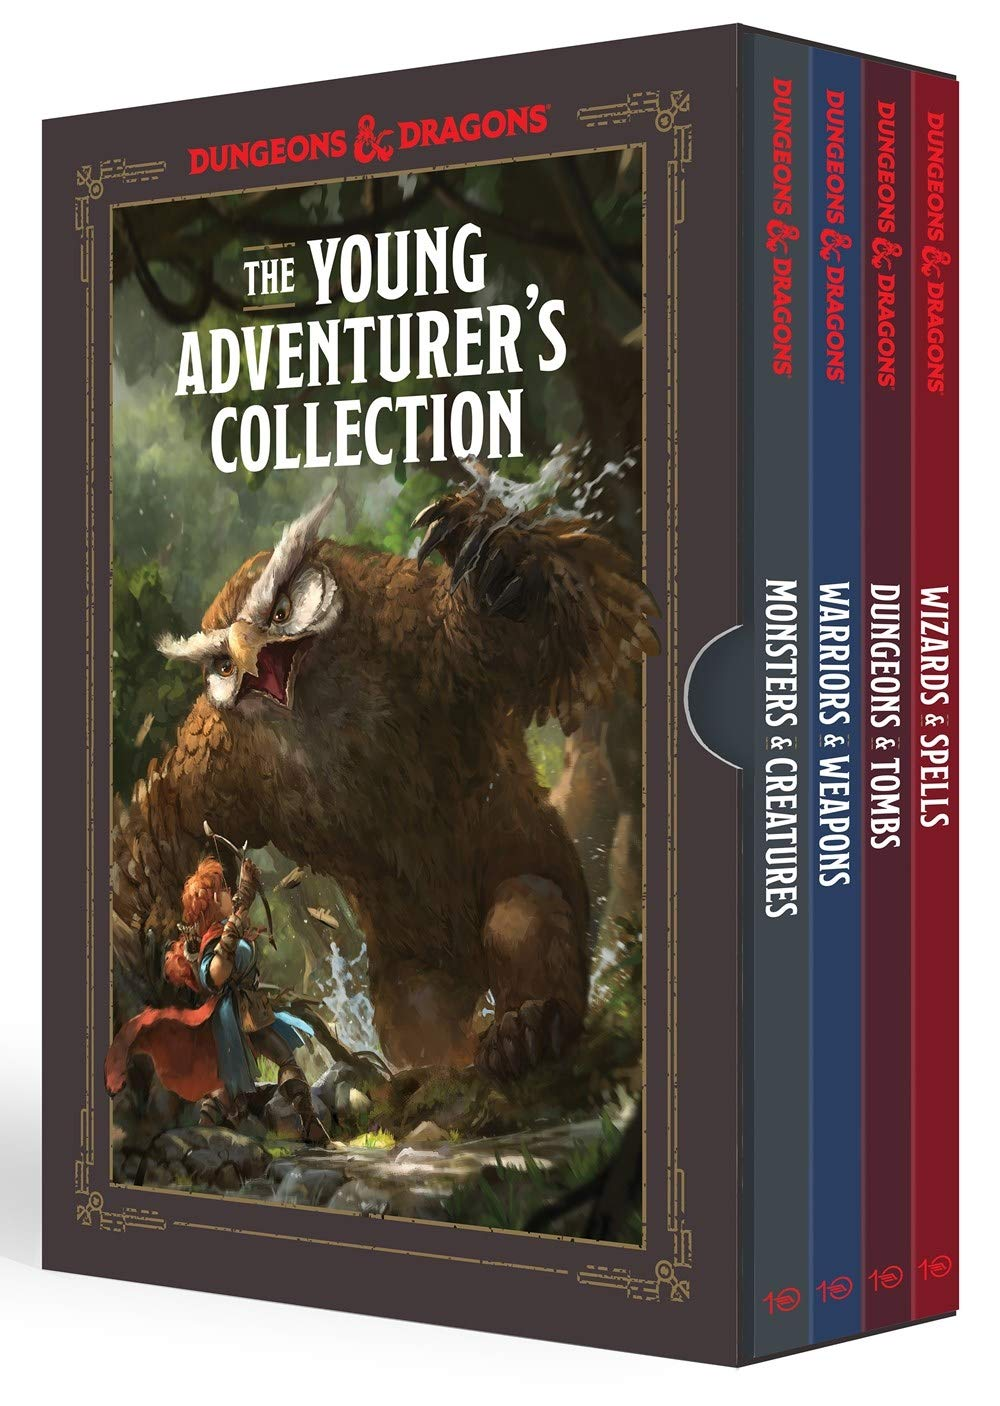 Young Adventurer's Collection